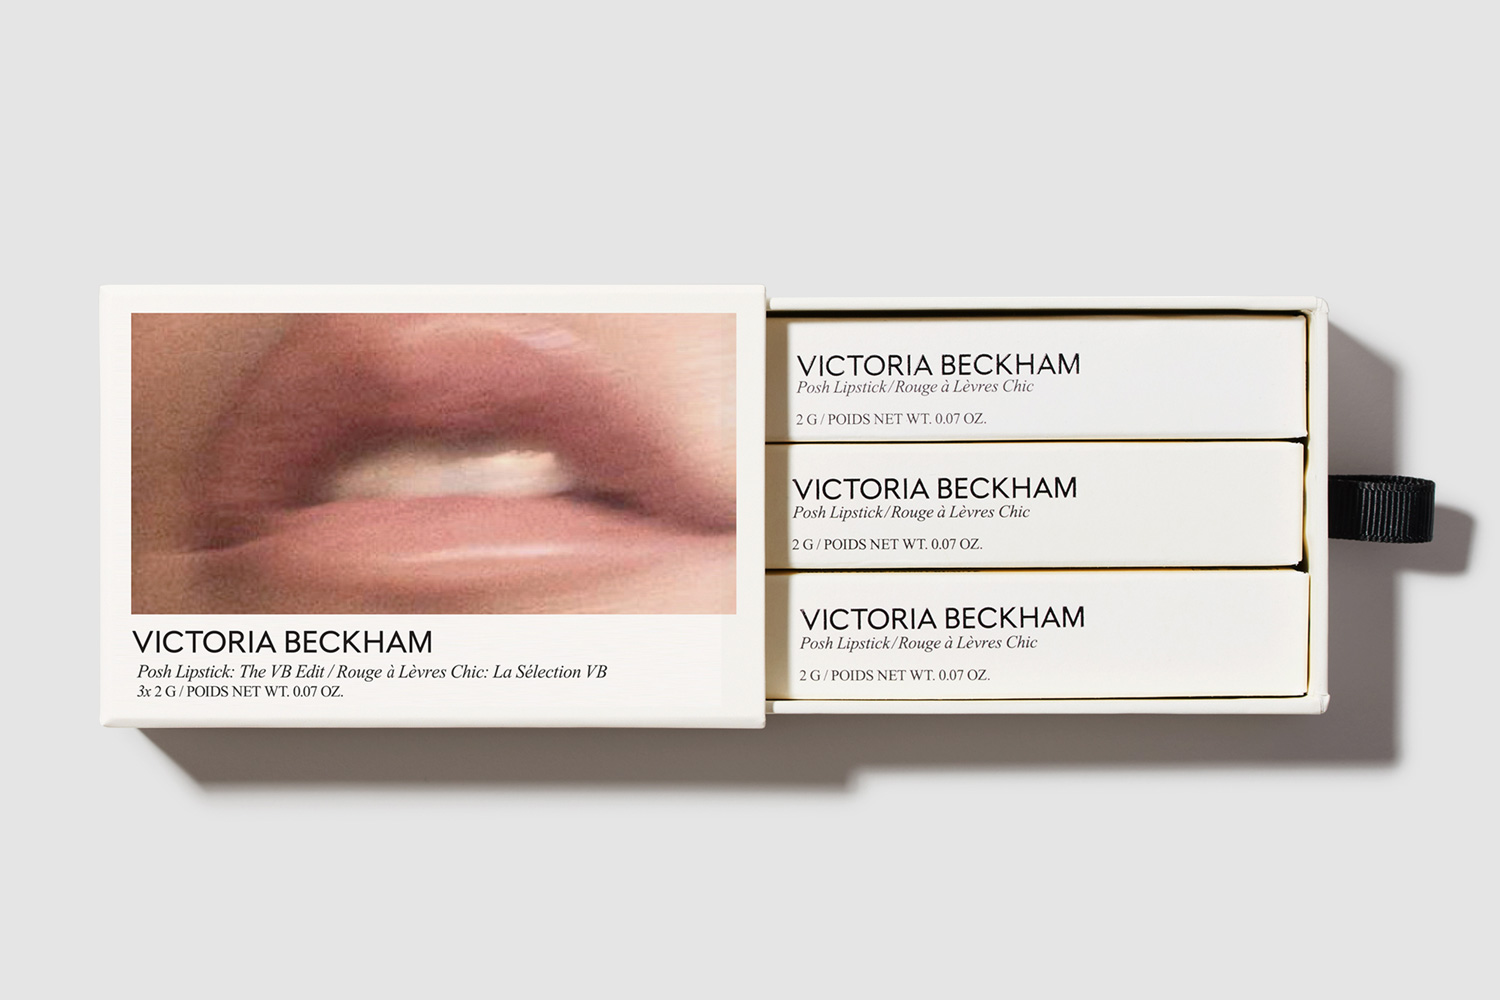 Packaging Beauty Cosmetics Makeup Retail Luxury Recyclable Environmentally Friendly Brand Creative Manufacture Production Victoria Beckham Progress 10